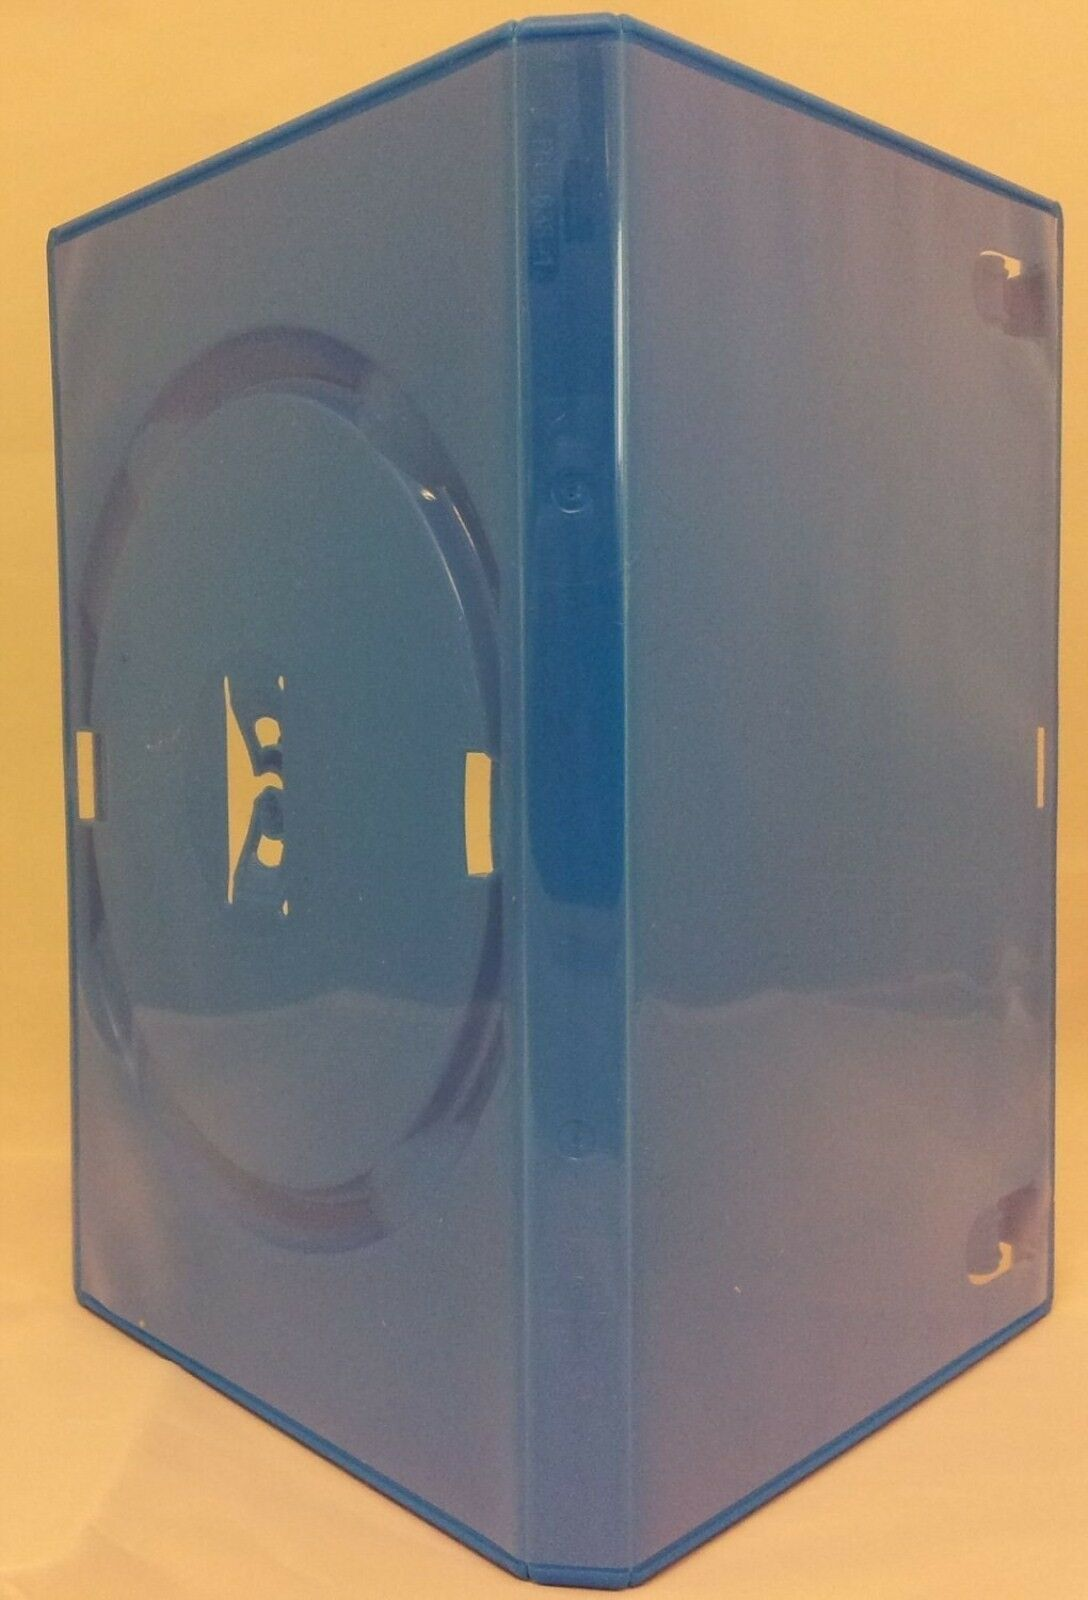 wii case The wii (pronounced we) is a video game console made by nintendo it first came out on november 19, 2006, in north america it plays video games made for the wii and the nintendo gamecube  there is also a case that looks like a gun for the wii remote and nunchuk.